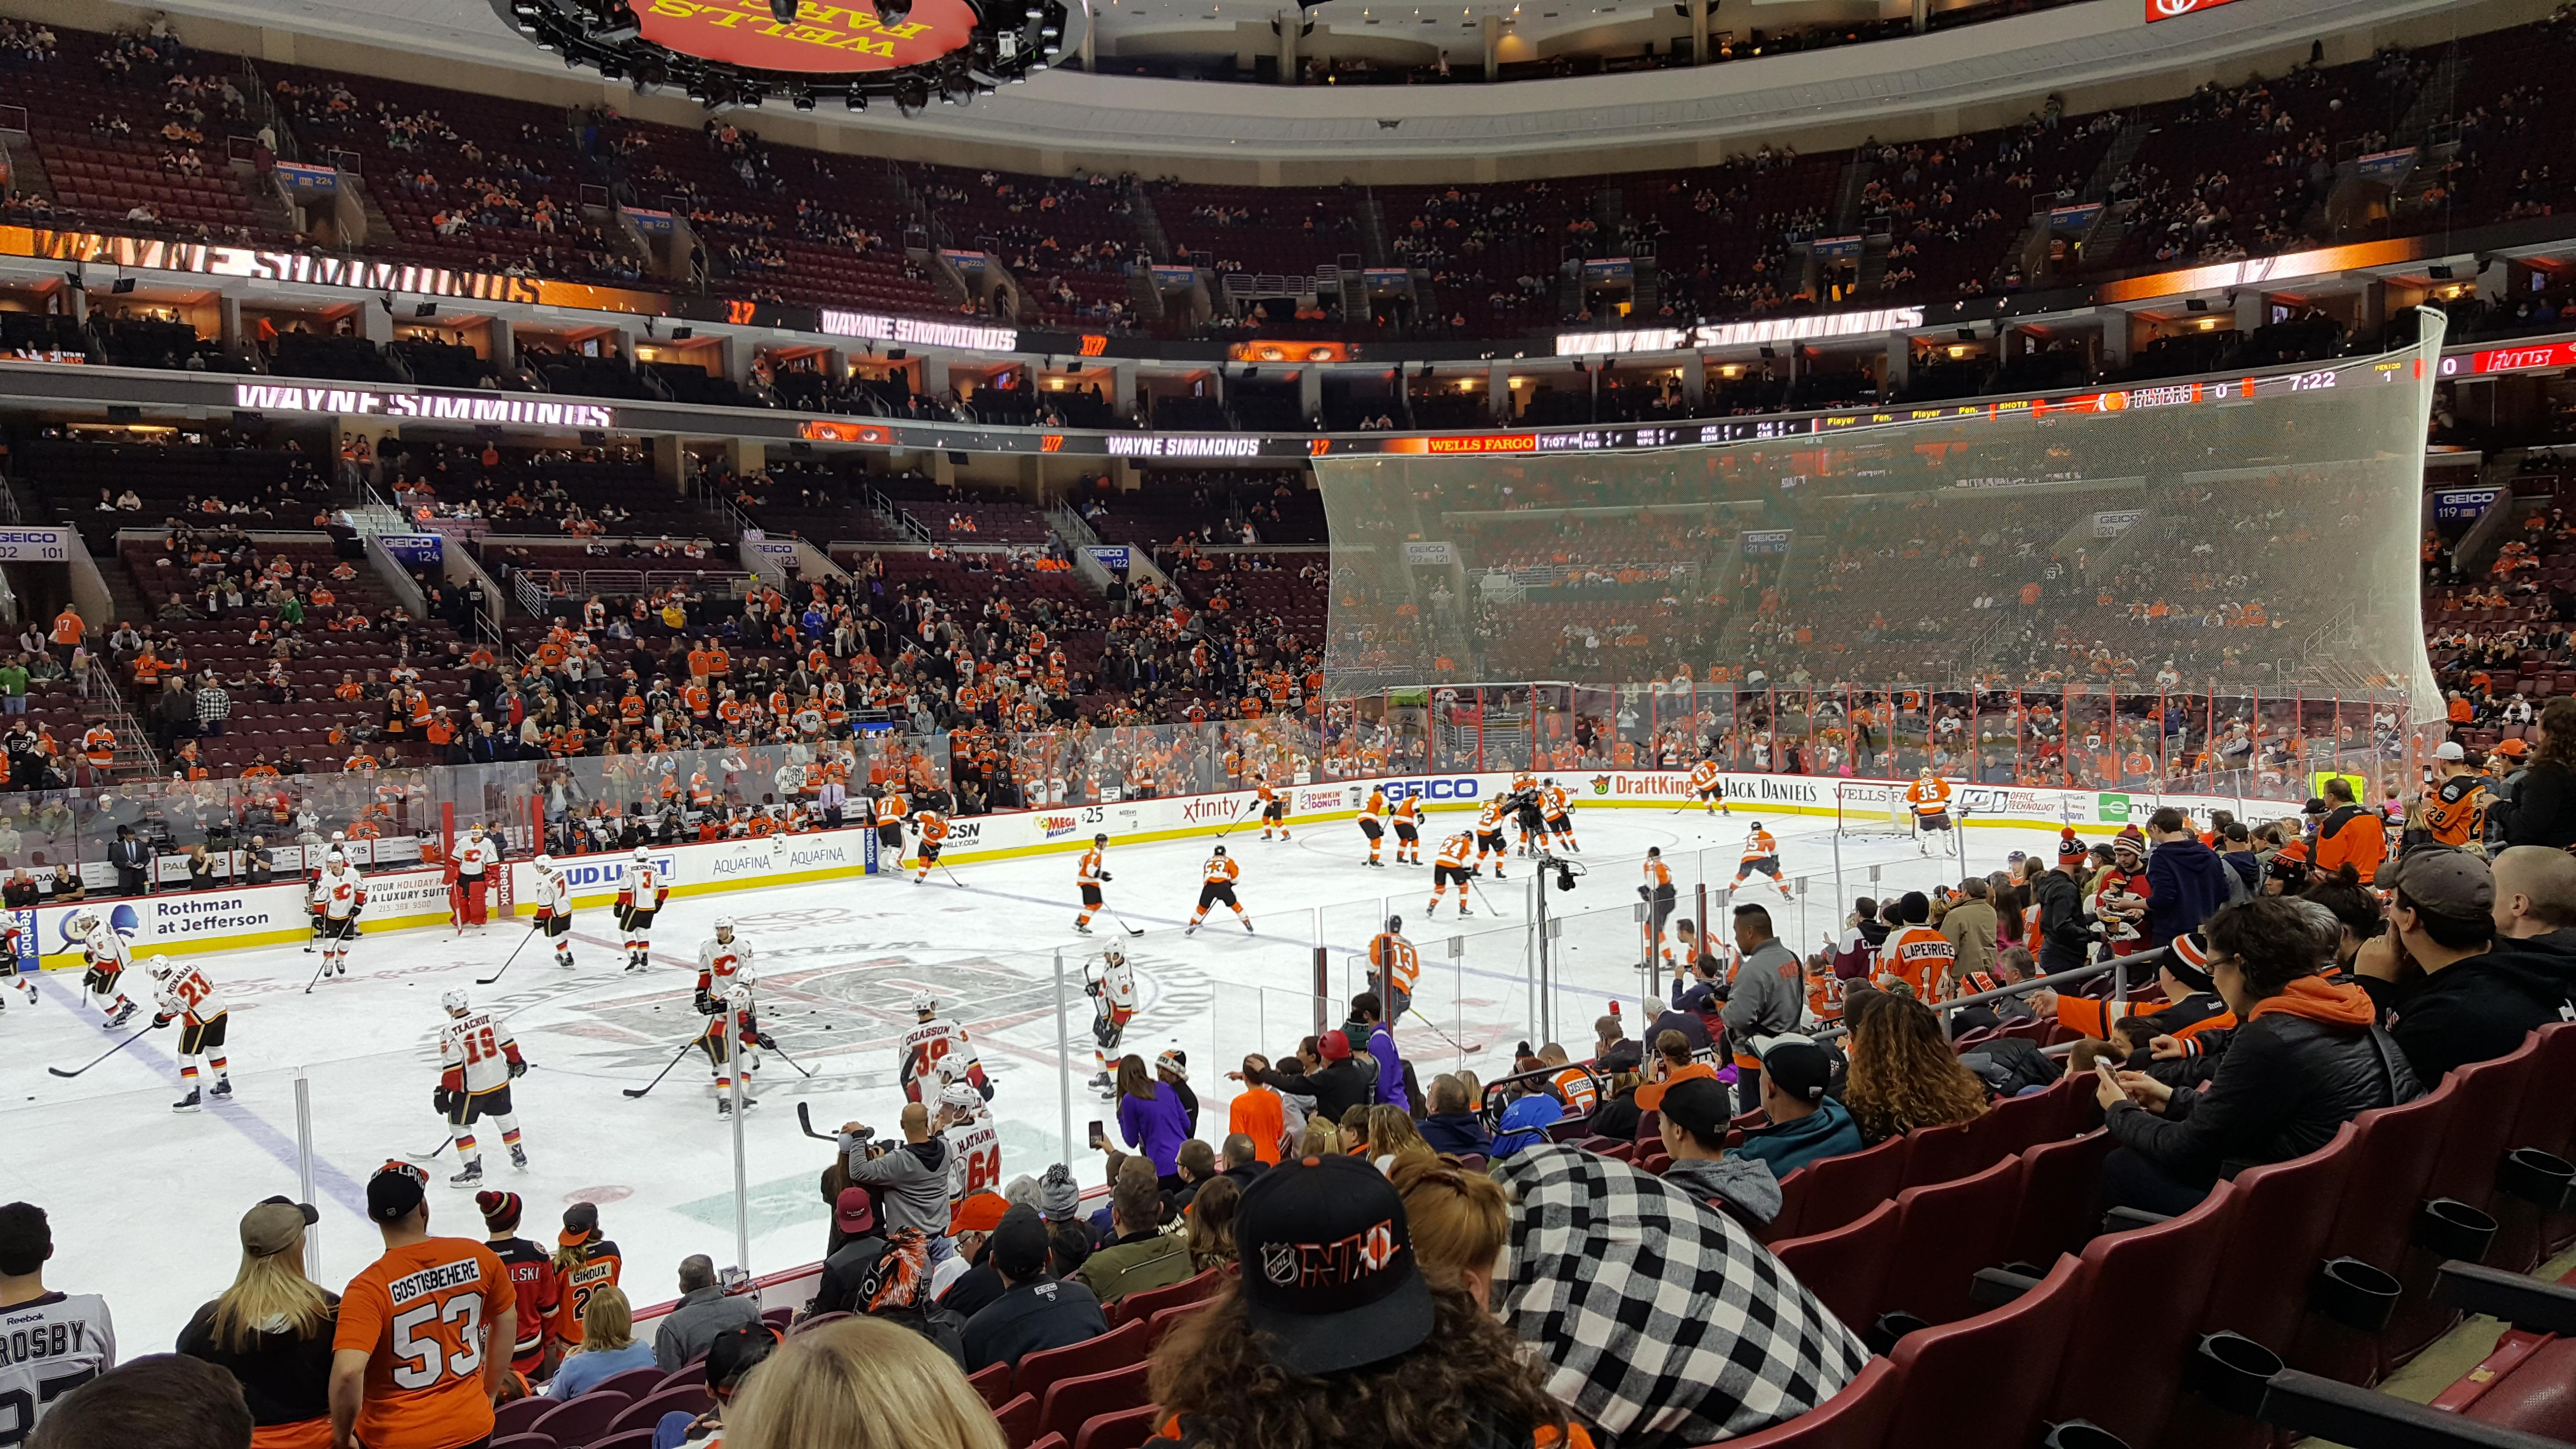 Wells Fargo Center Section 112 Row 14 Seat 4